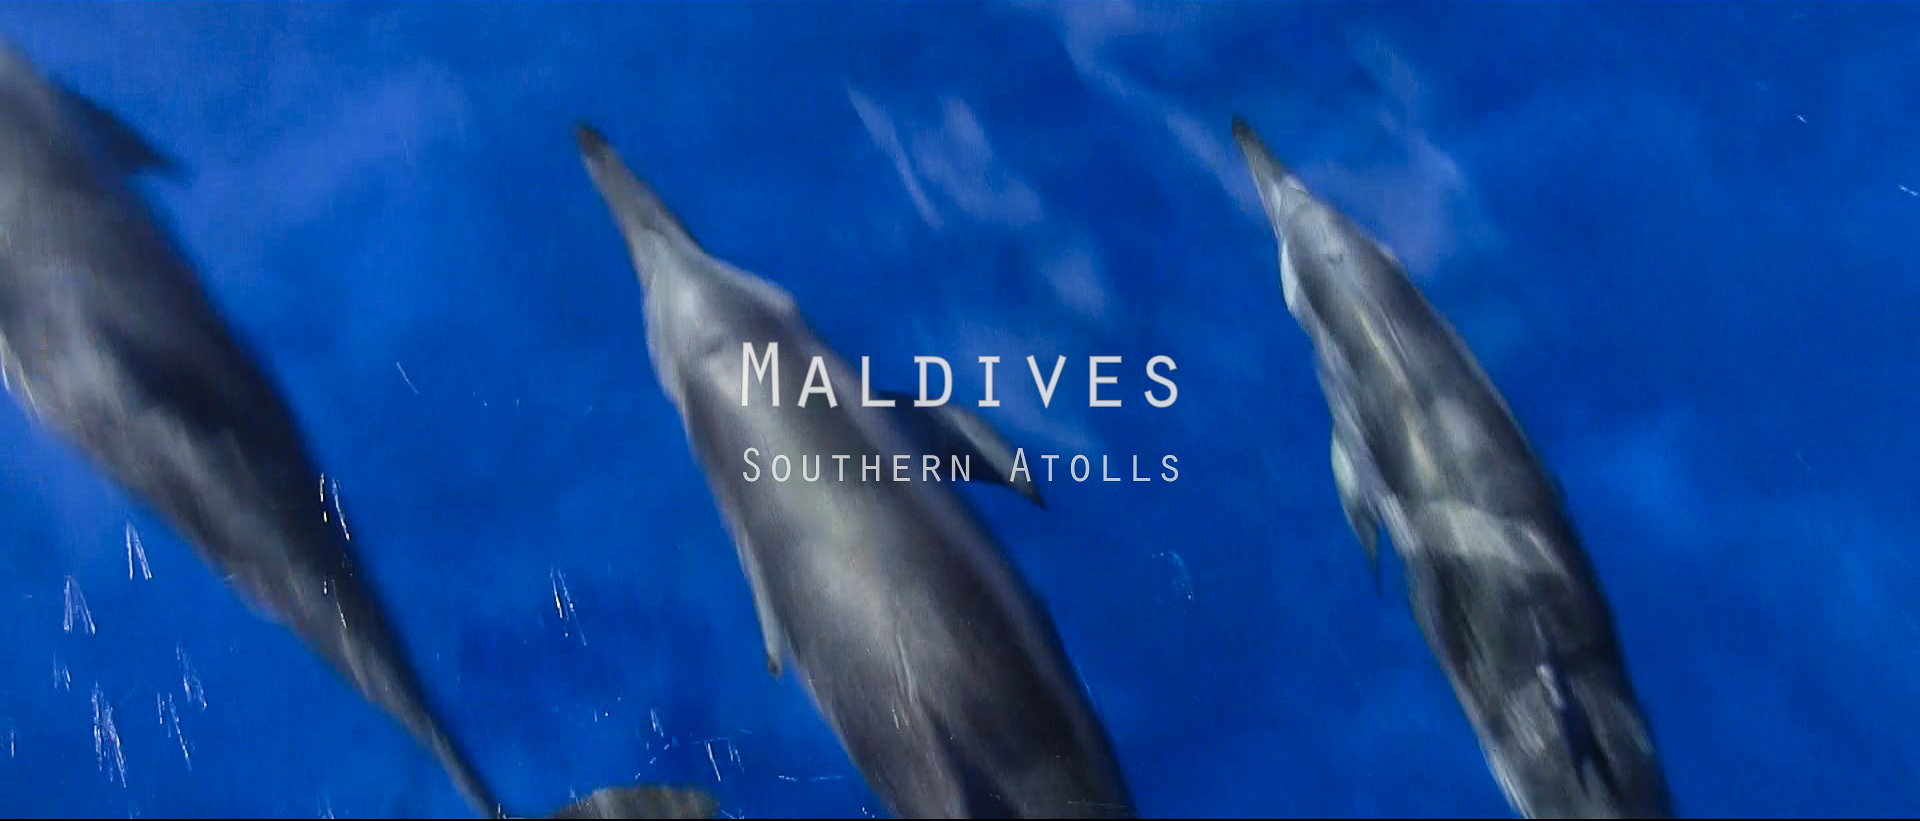 Southern Atolls, Maldives Part 1